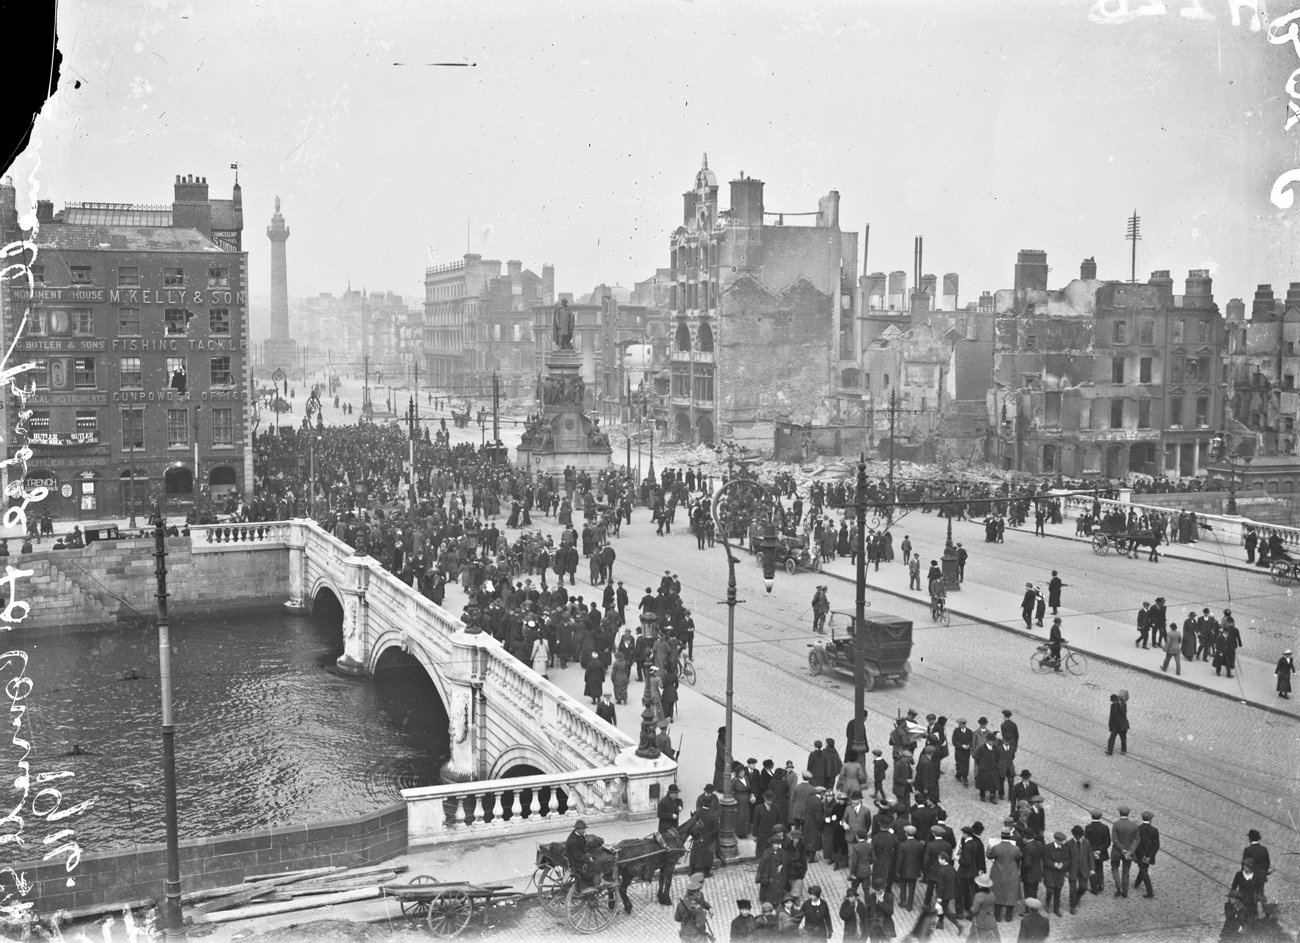 Object: O'Connell Bridge and Street, 1916